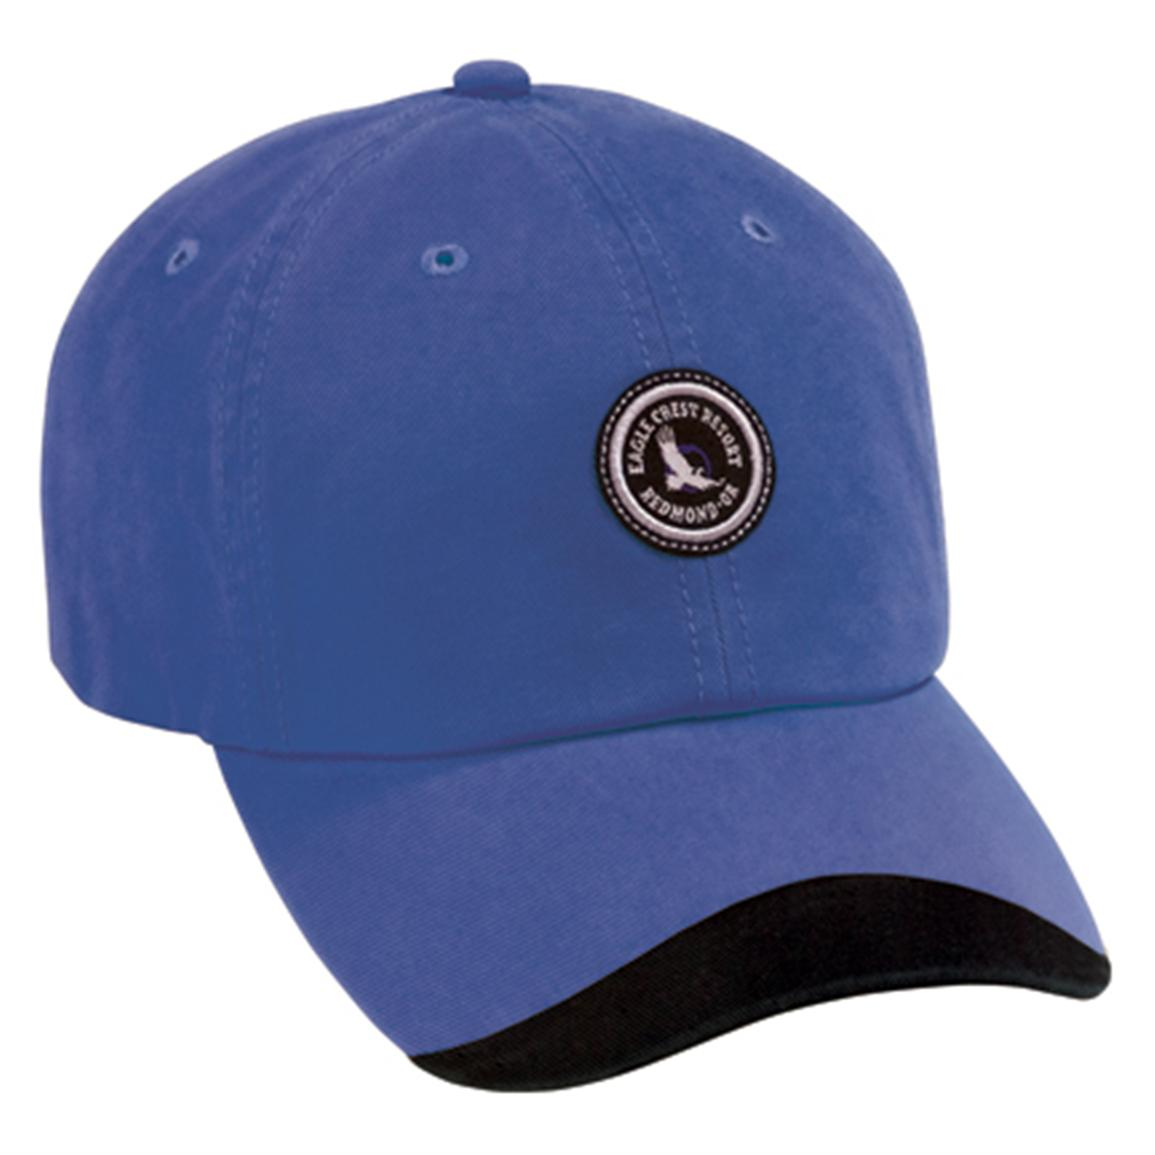 Page & Tuttle® Washed Twill Cap with Contour Bill, Cobalt/Black